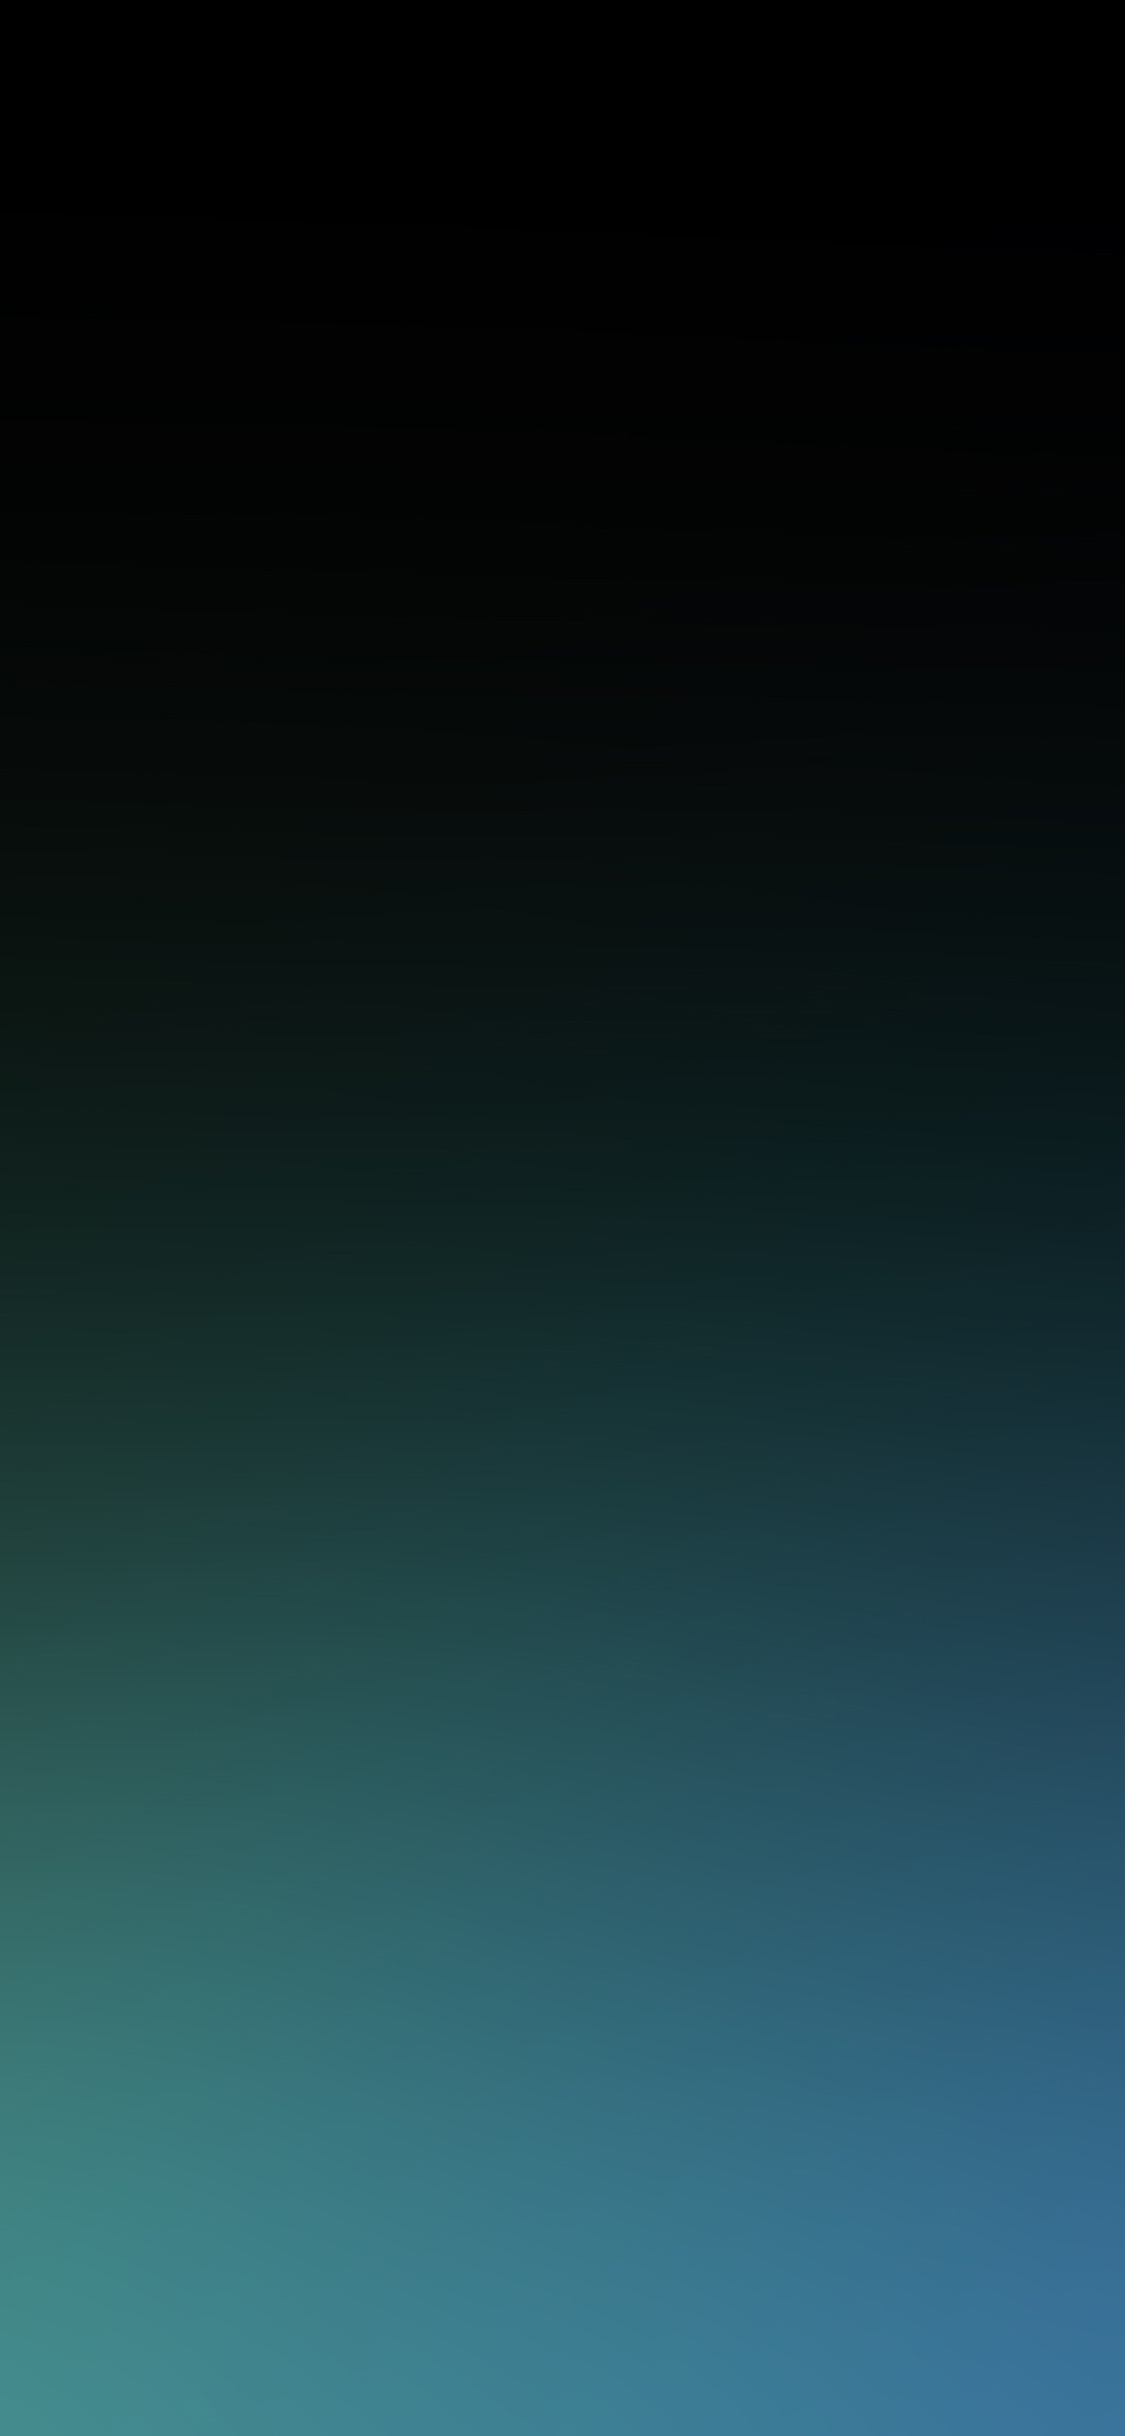 iPhoneXpapers.com-Apple-iPhone-wallpaper-sf60-dark-under-sea-blue-gradation-blur